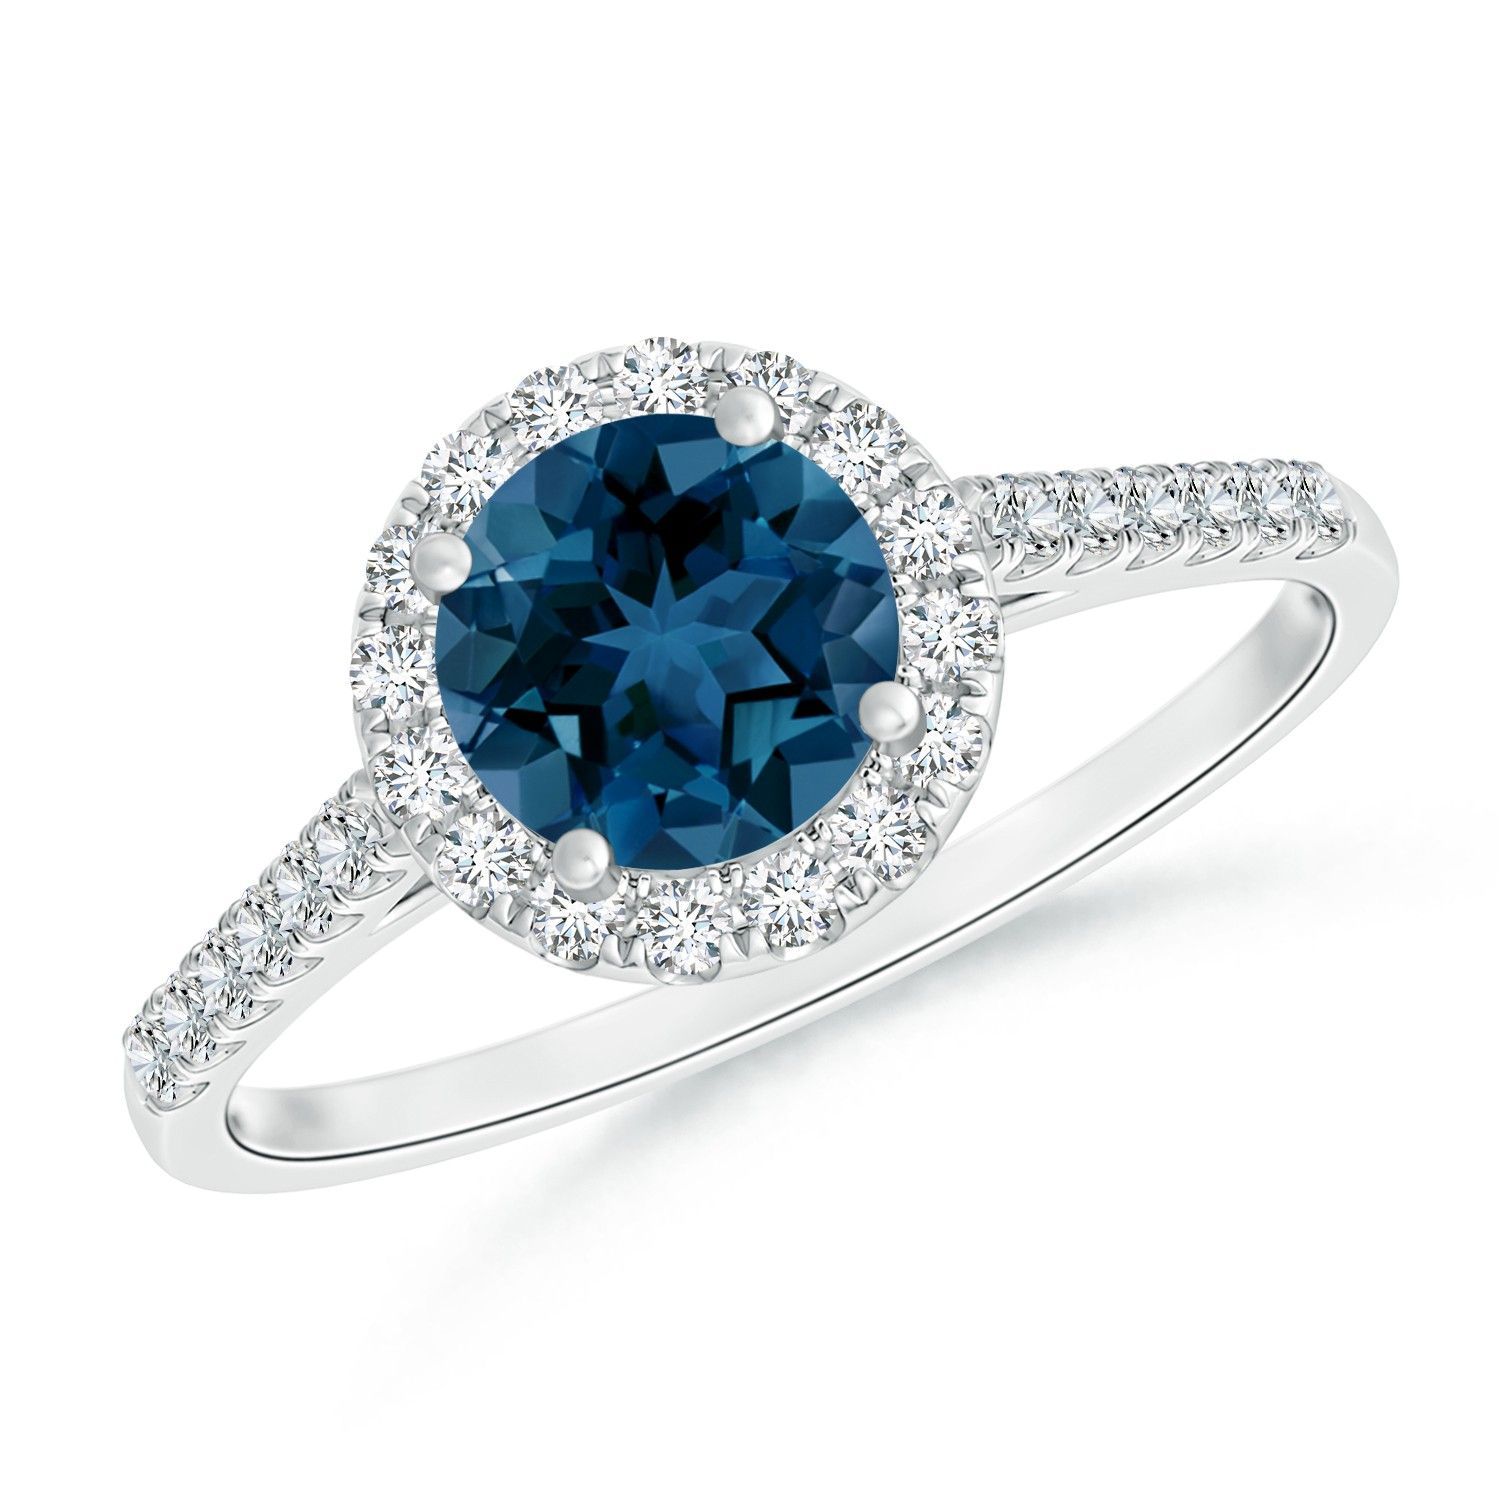 Angara Natural Tanzanite Solitaire Engagement Ring in White Gold